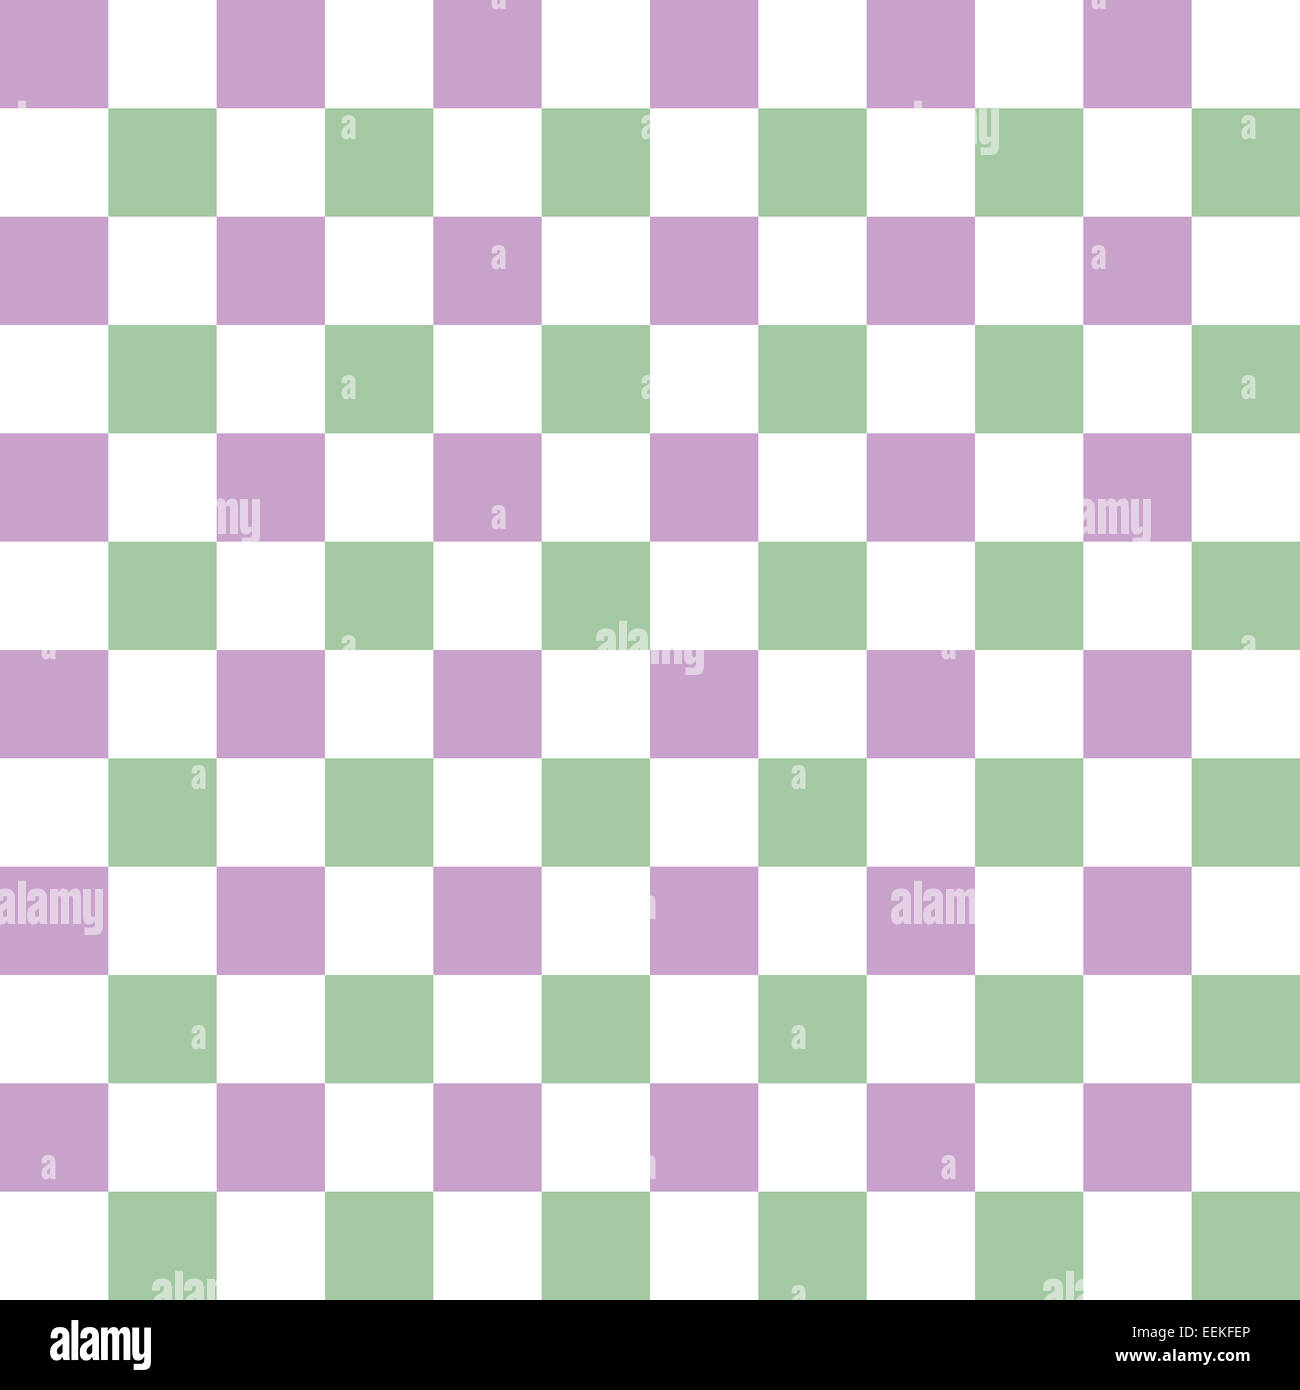 Seamless Checkered Pattern With Complementary Colors Lilac Light Green And White